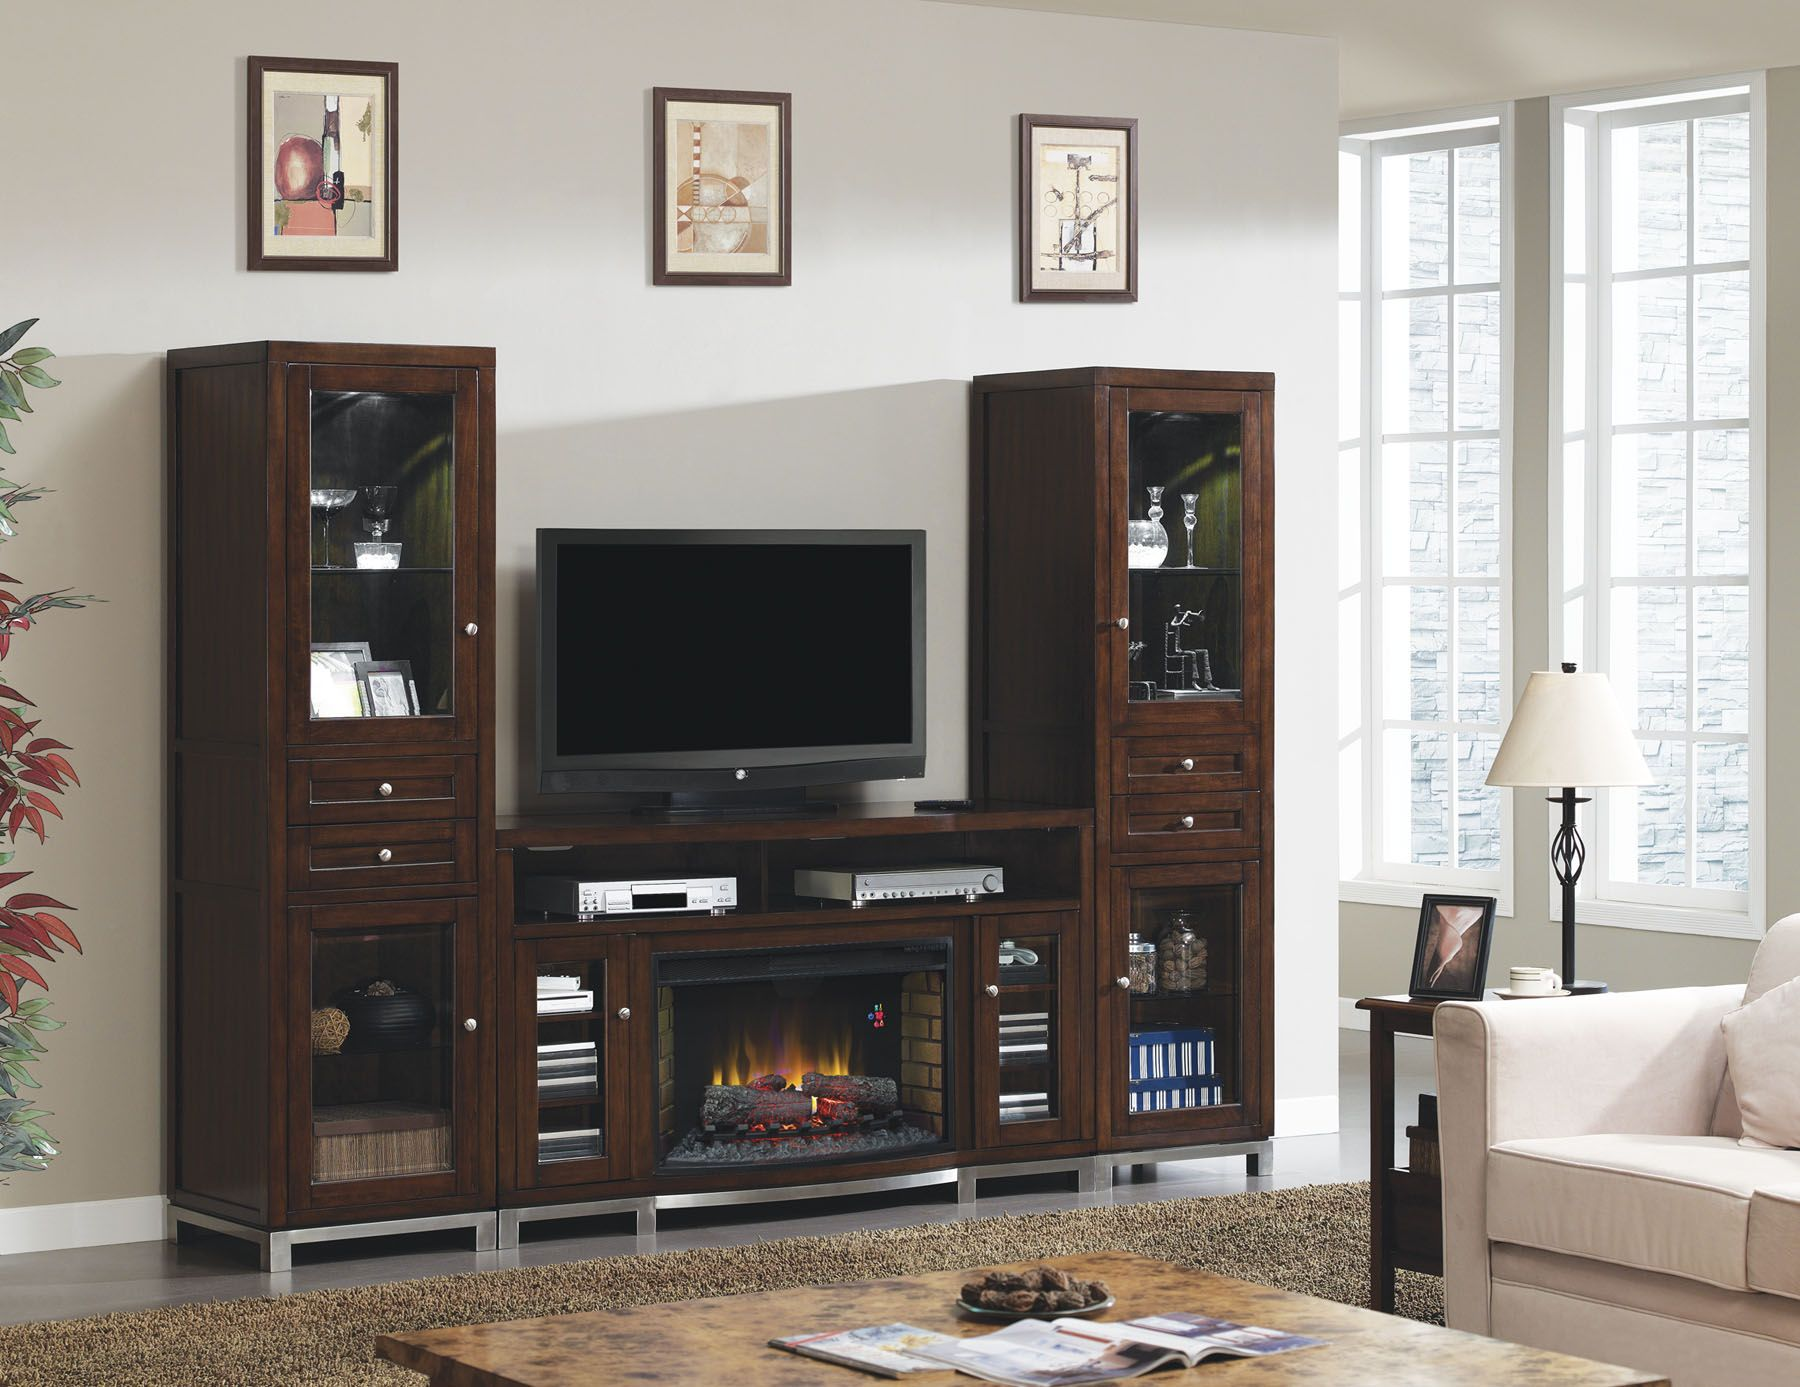 This Combination Includes The Classicflame Wesleyan Electric Fireplace Media Mantel And